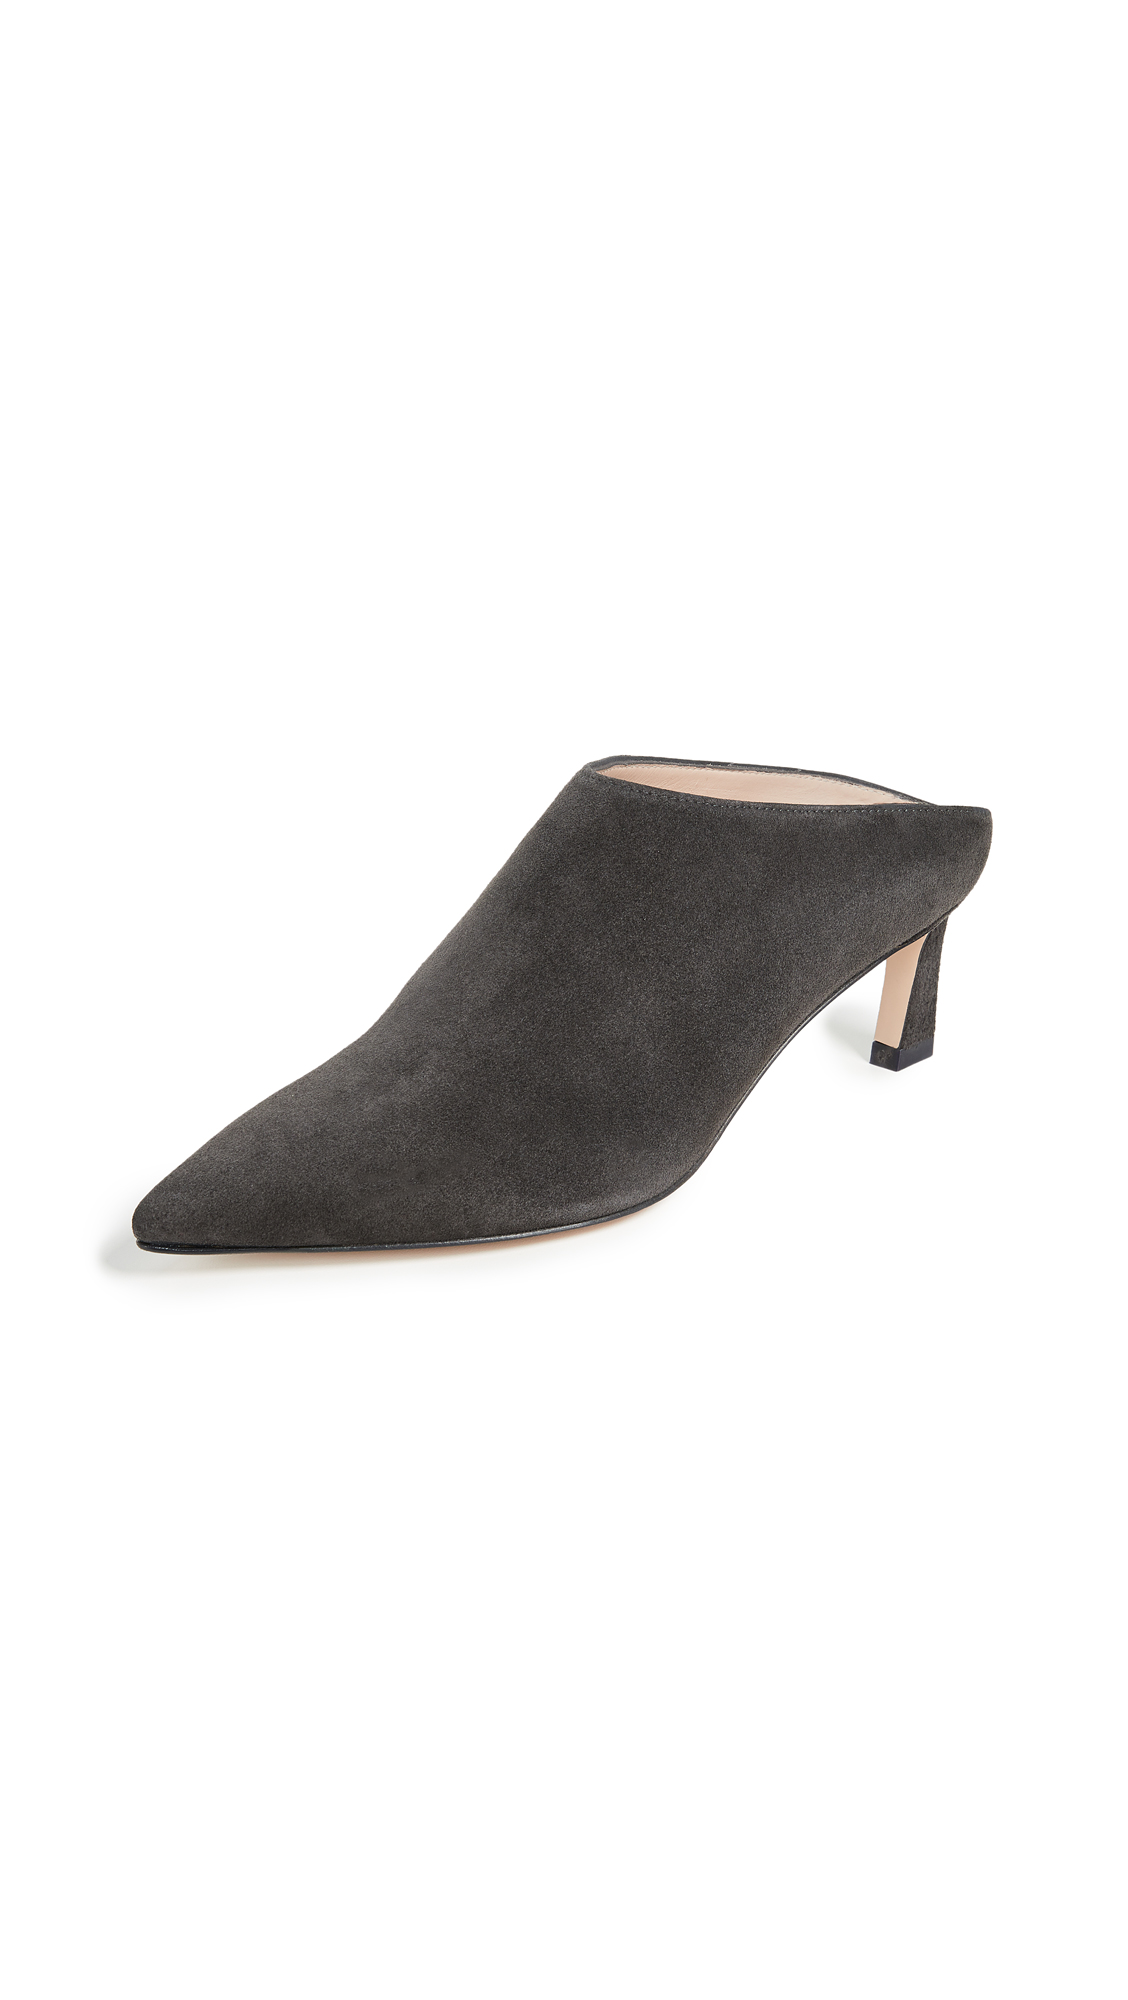 Photo of Stuart Weitzman Mira Mules online shoes sales